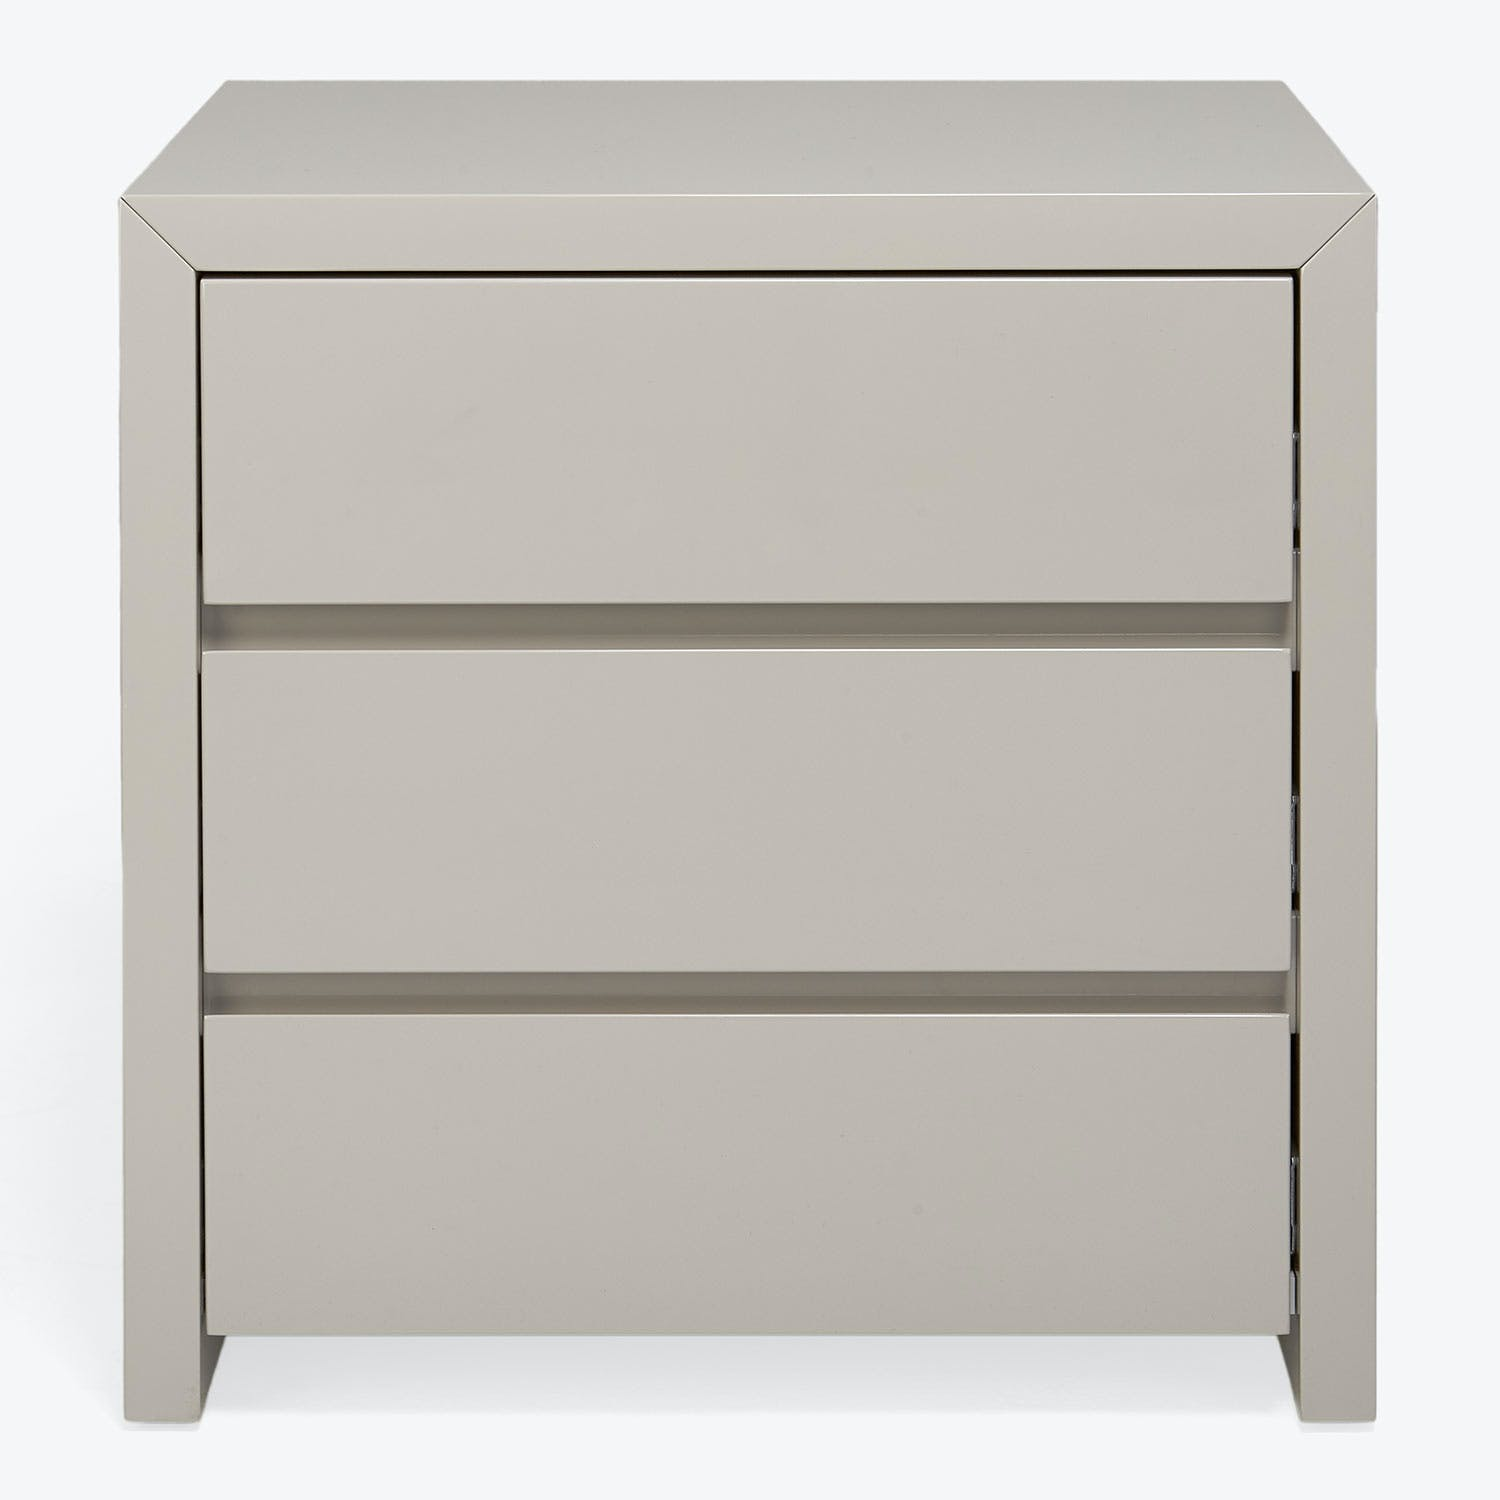 Product Image - Fresco 3 Drawer Lacquer Nightstand